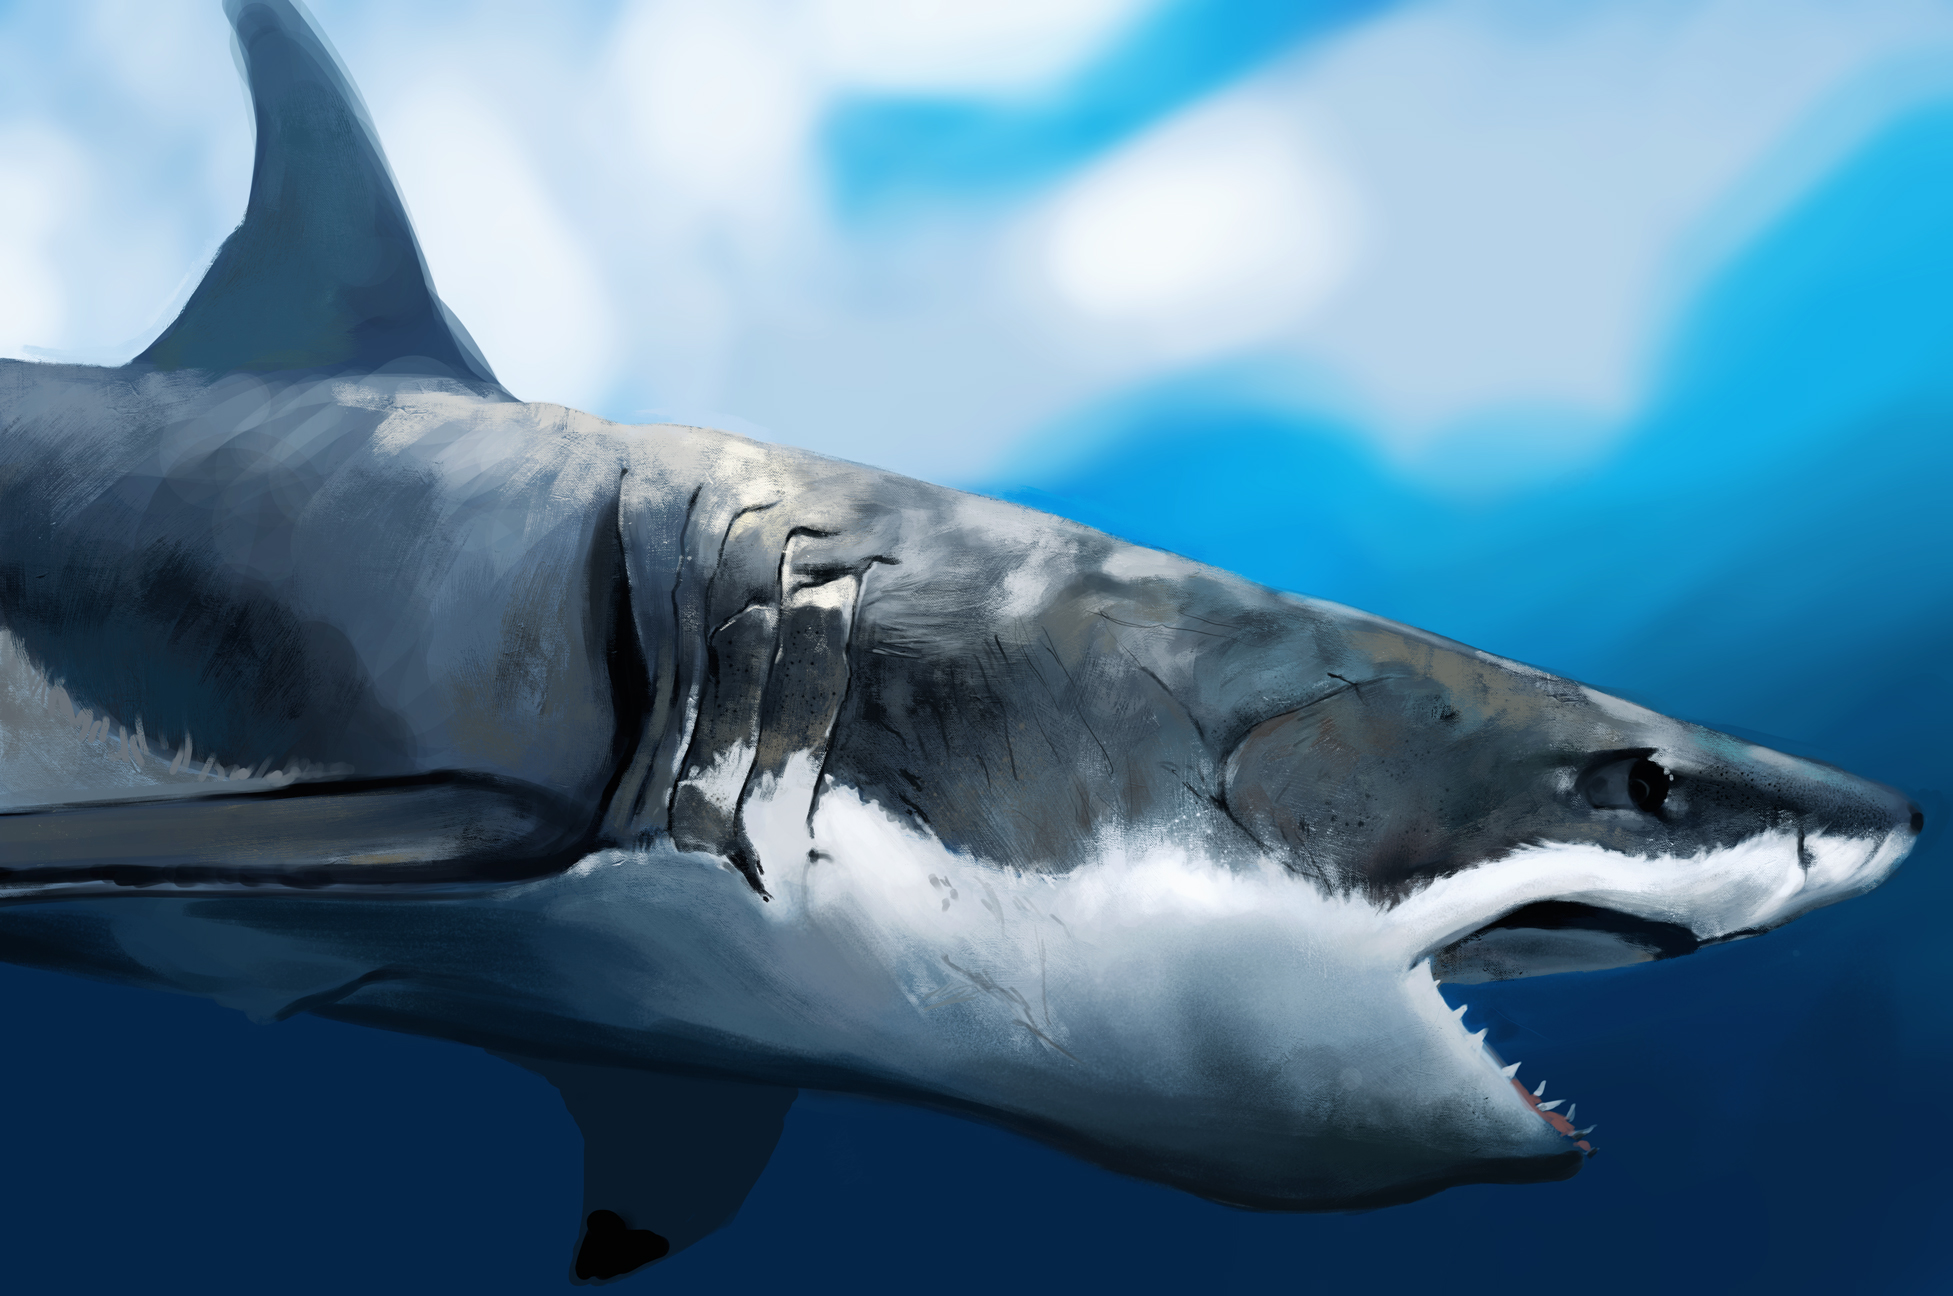 Shark Study by JoshSummana